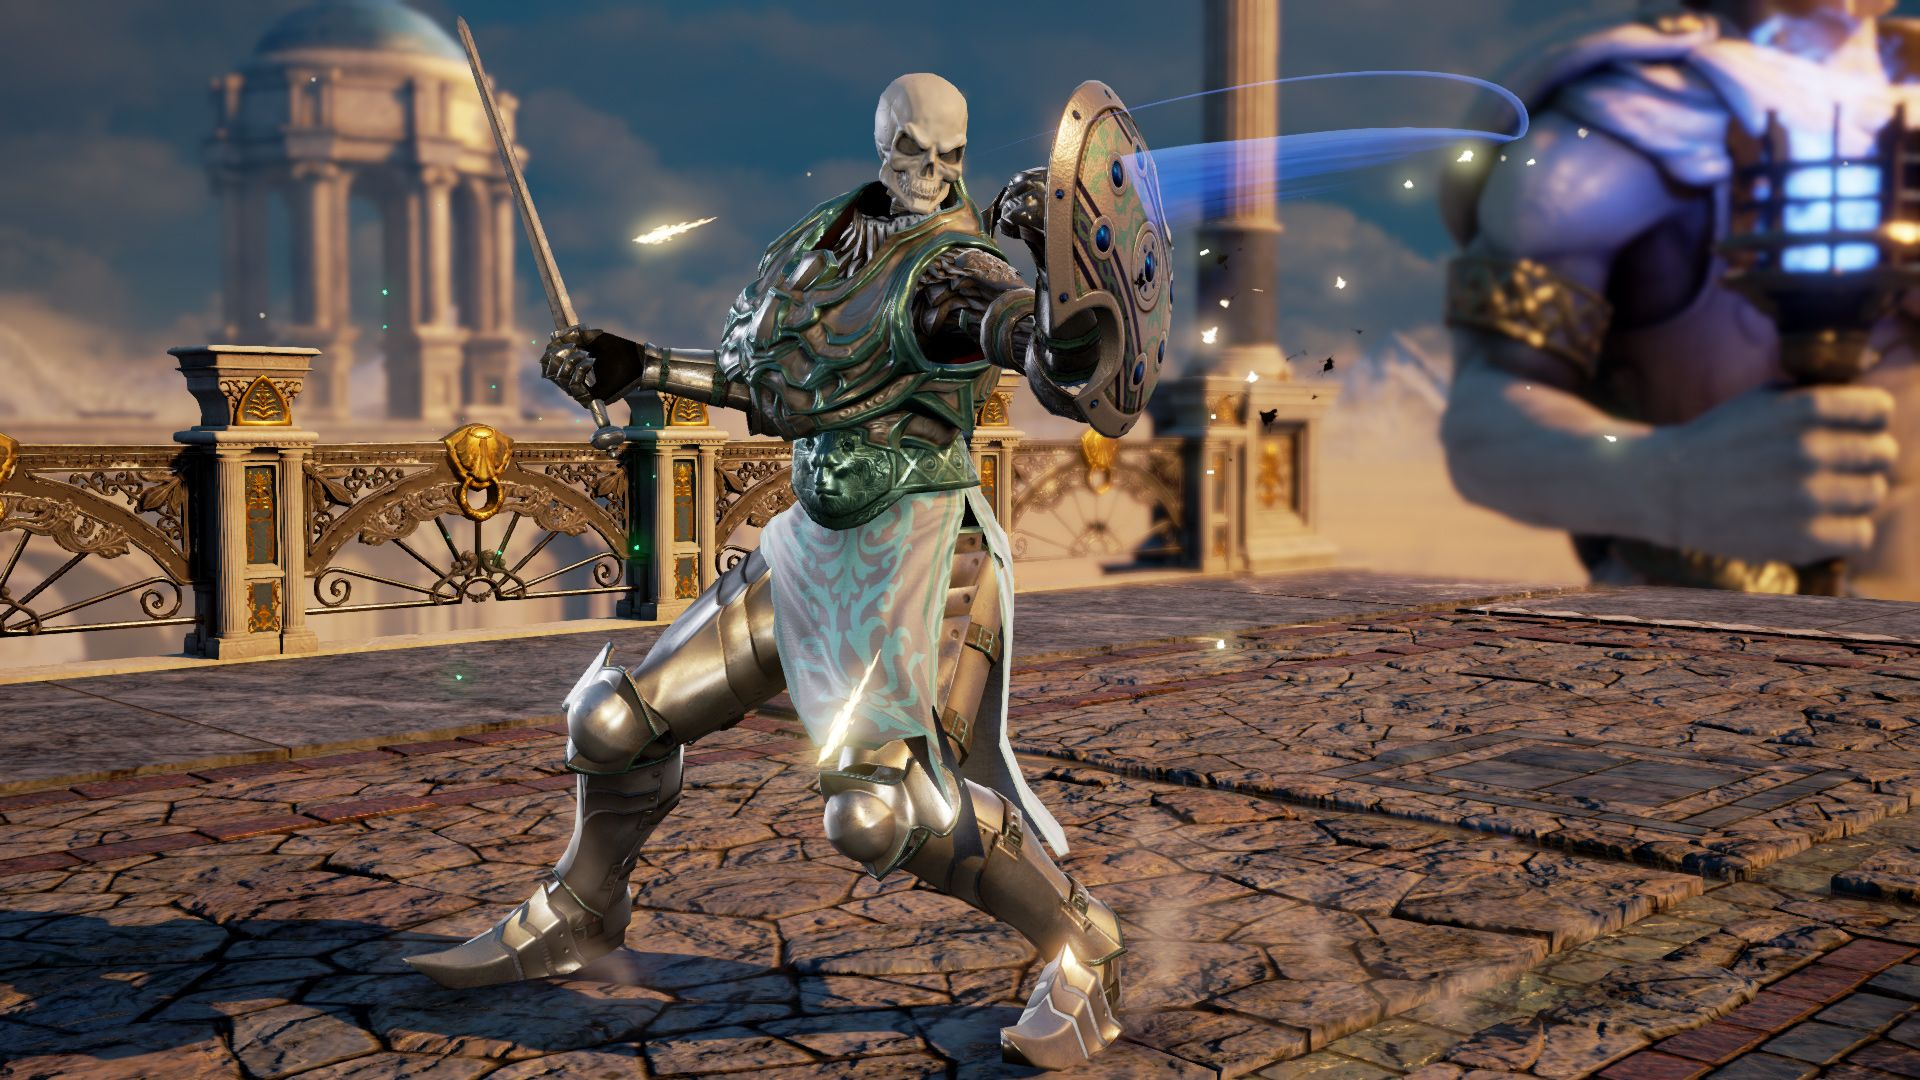 Become the hero of your own legend in SOULCALIBUR VI's